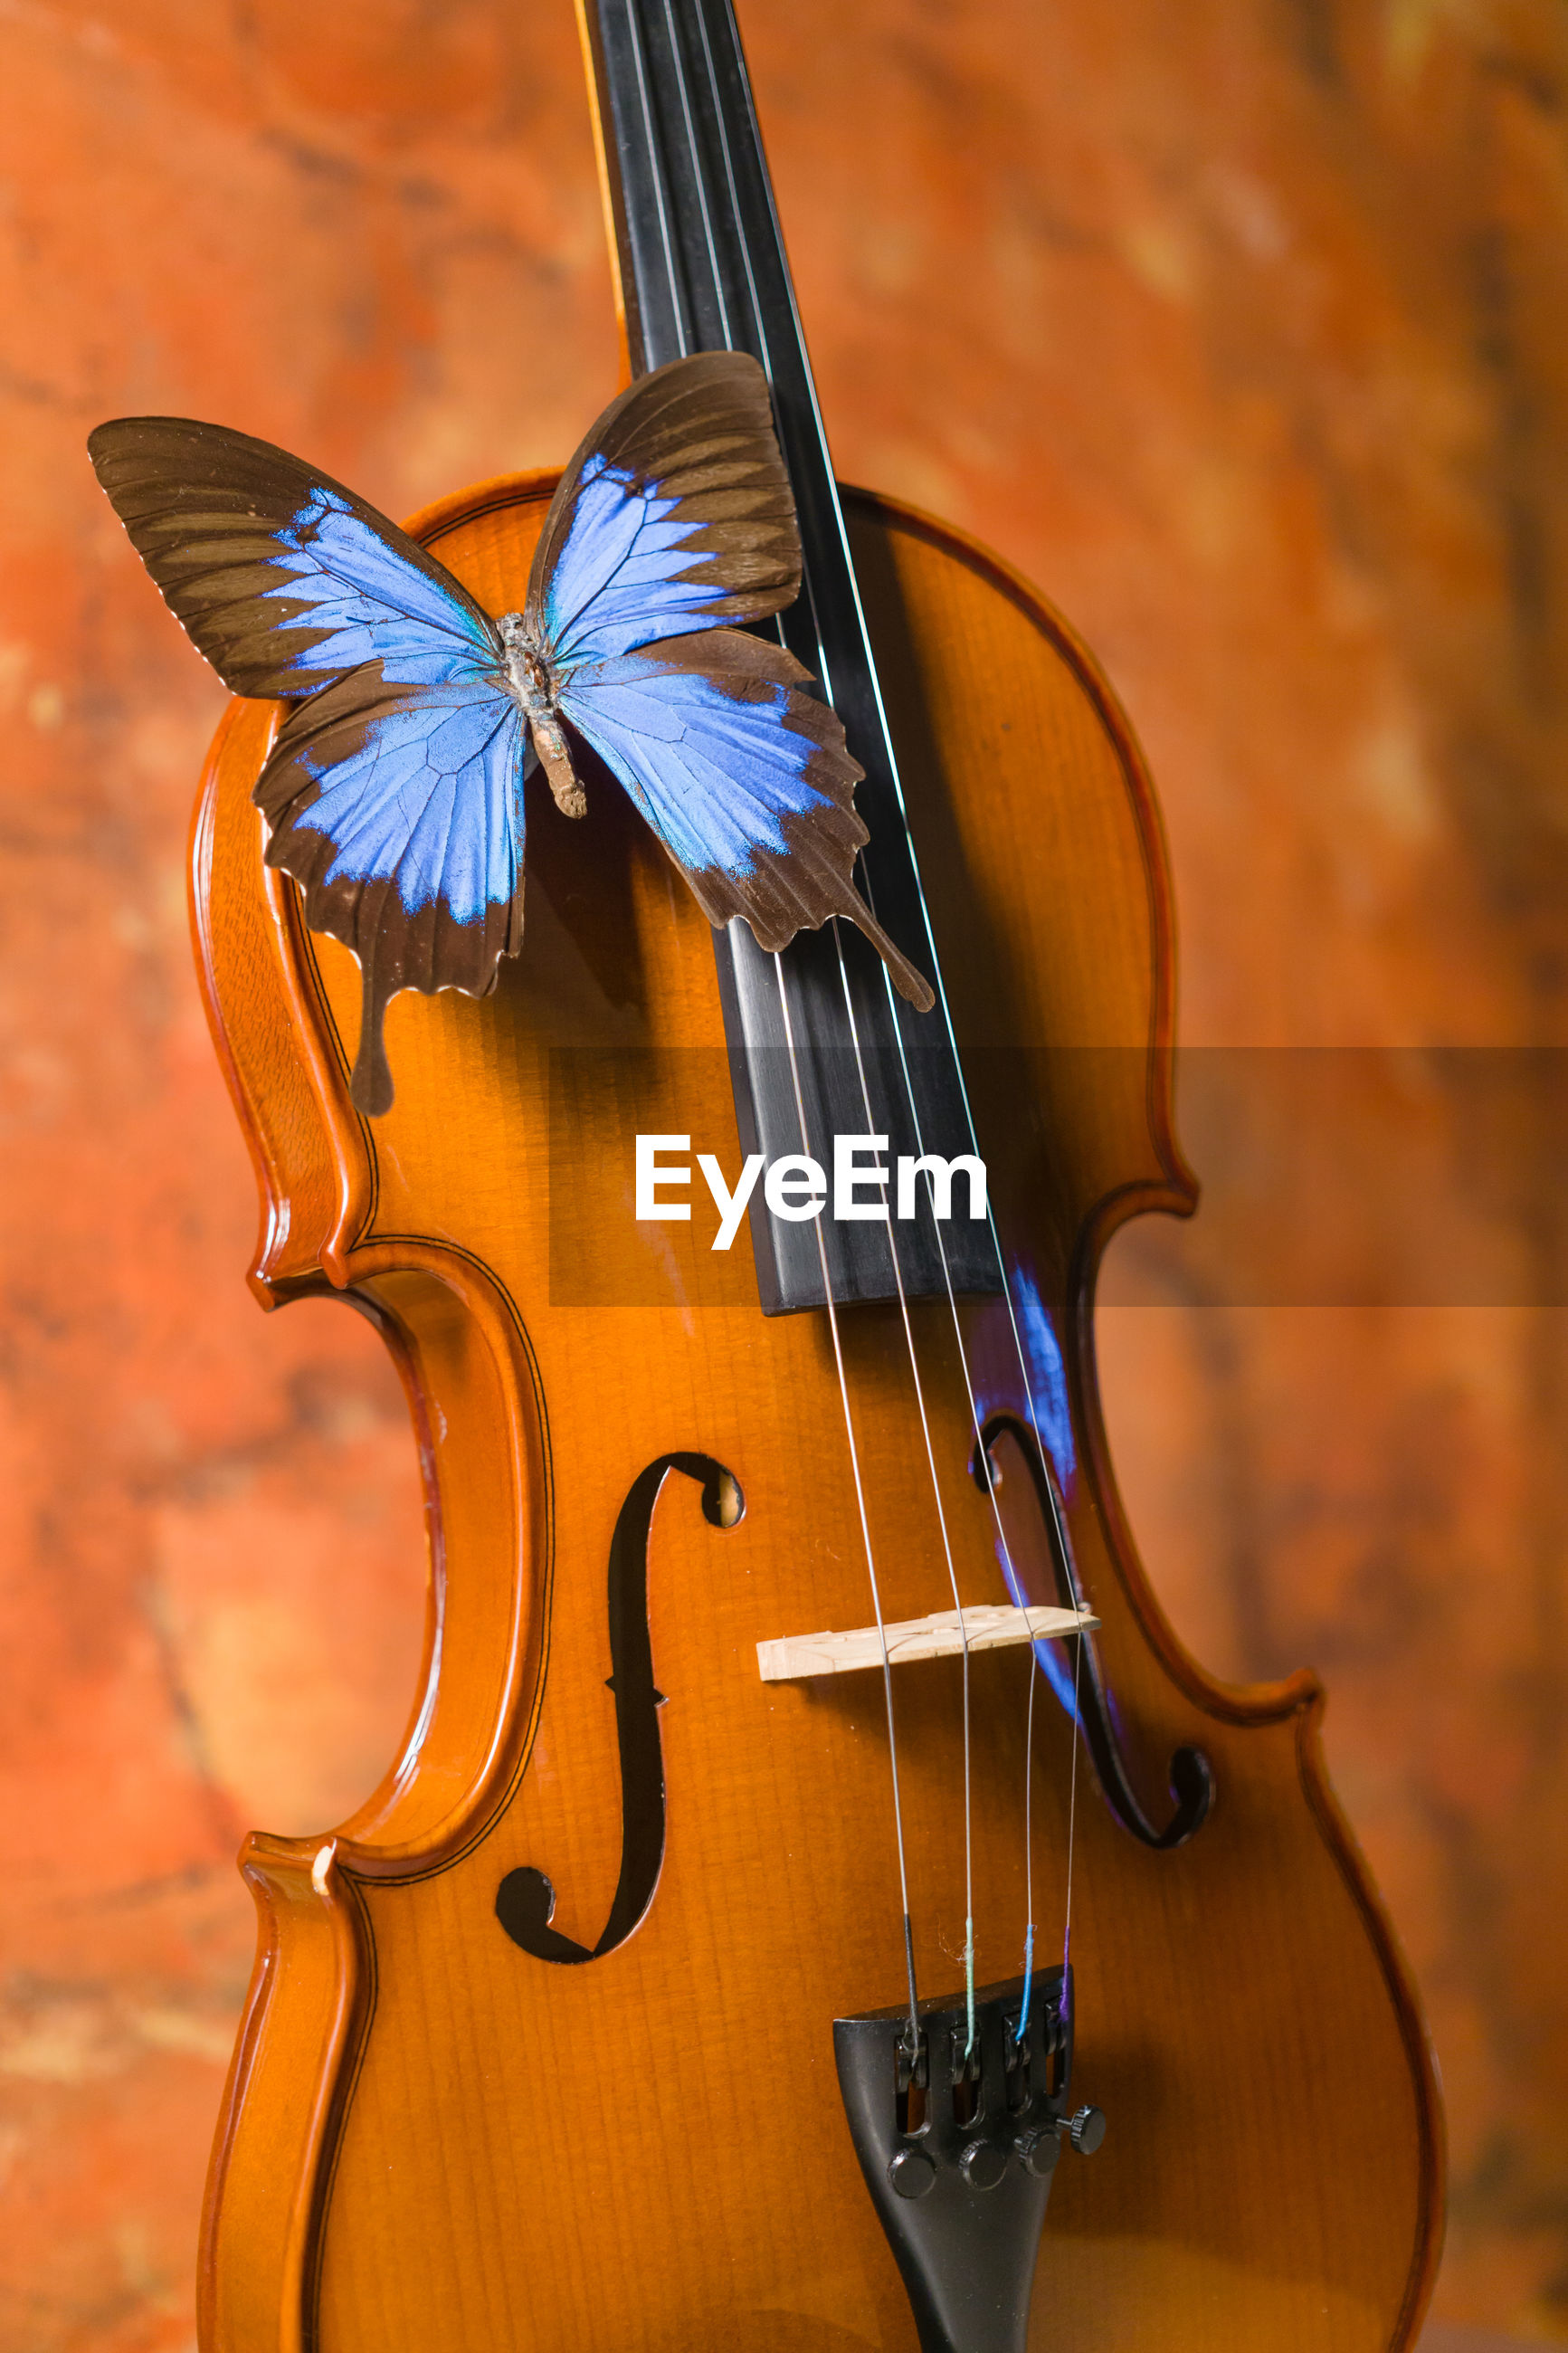 Close-up of violin and blue butterfly on rustic background